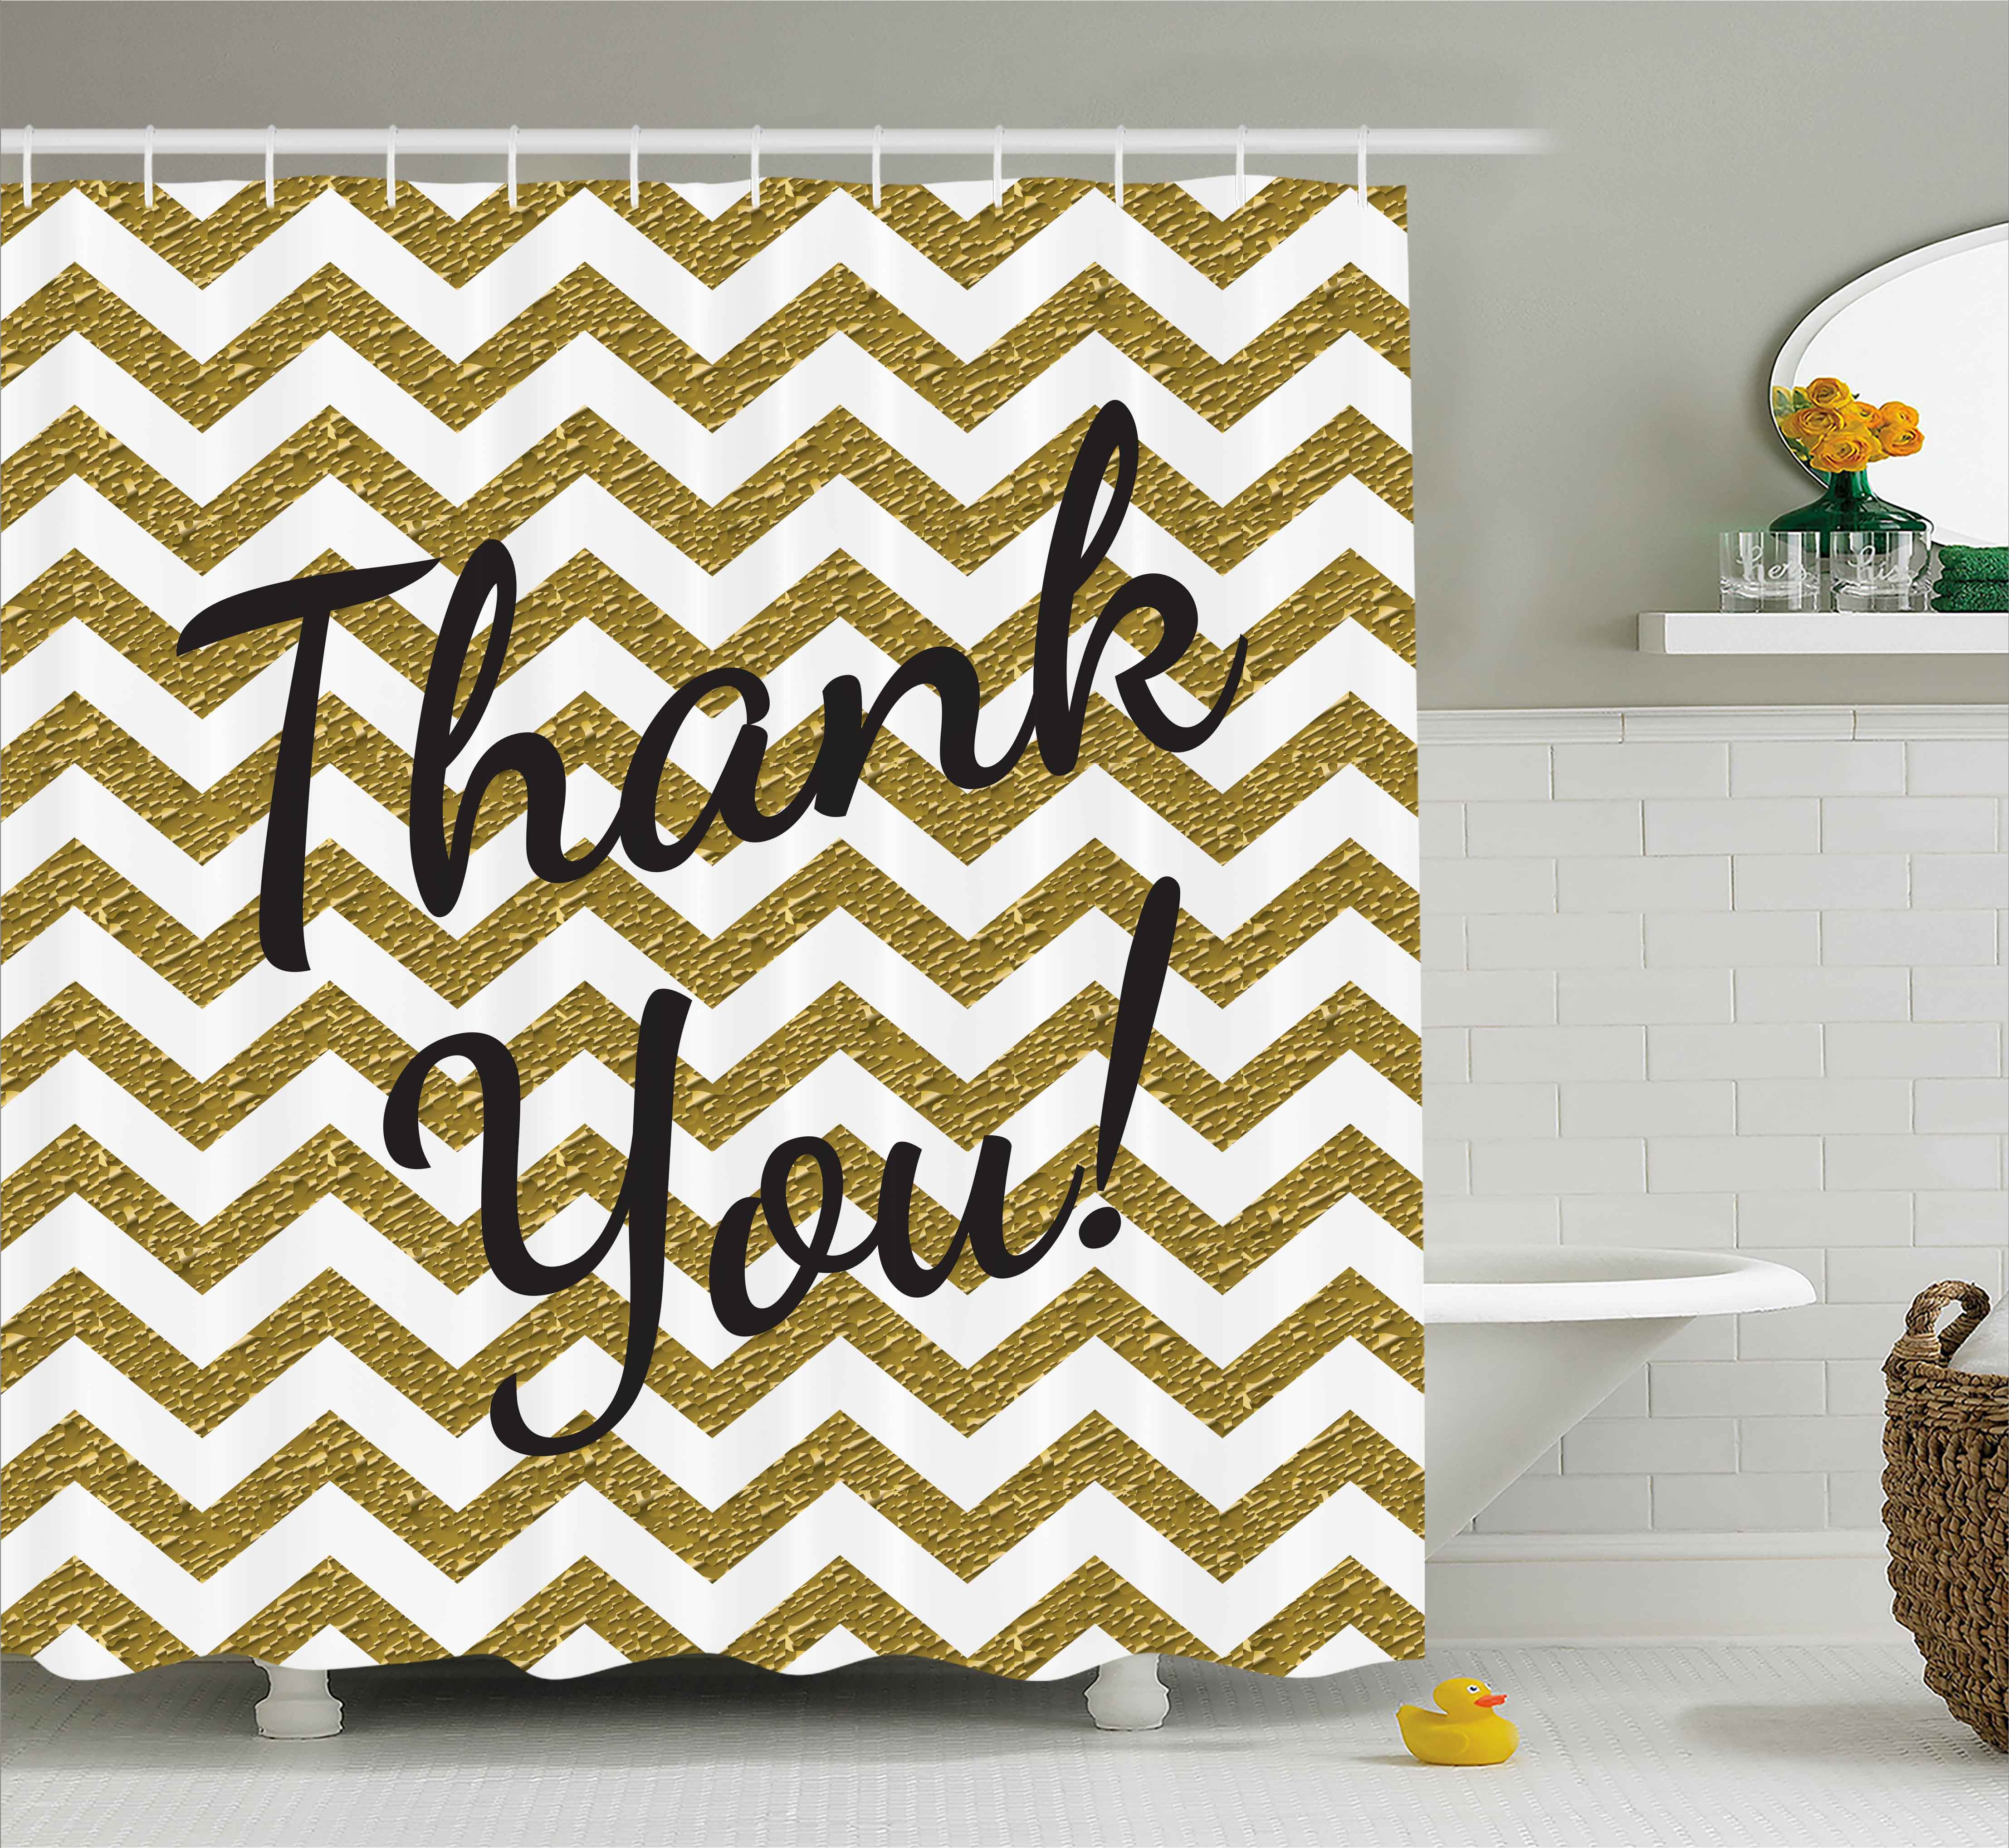 Modern Shower Curtain, Geometric Zig Zag Colored Little Stones like Stripes with Thank You Quote Print, Fabric Bathroom Set with Hooks, 69W X 75L Inches Long, Gold and White, by Ambesonne